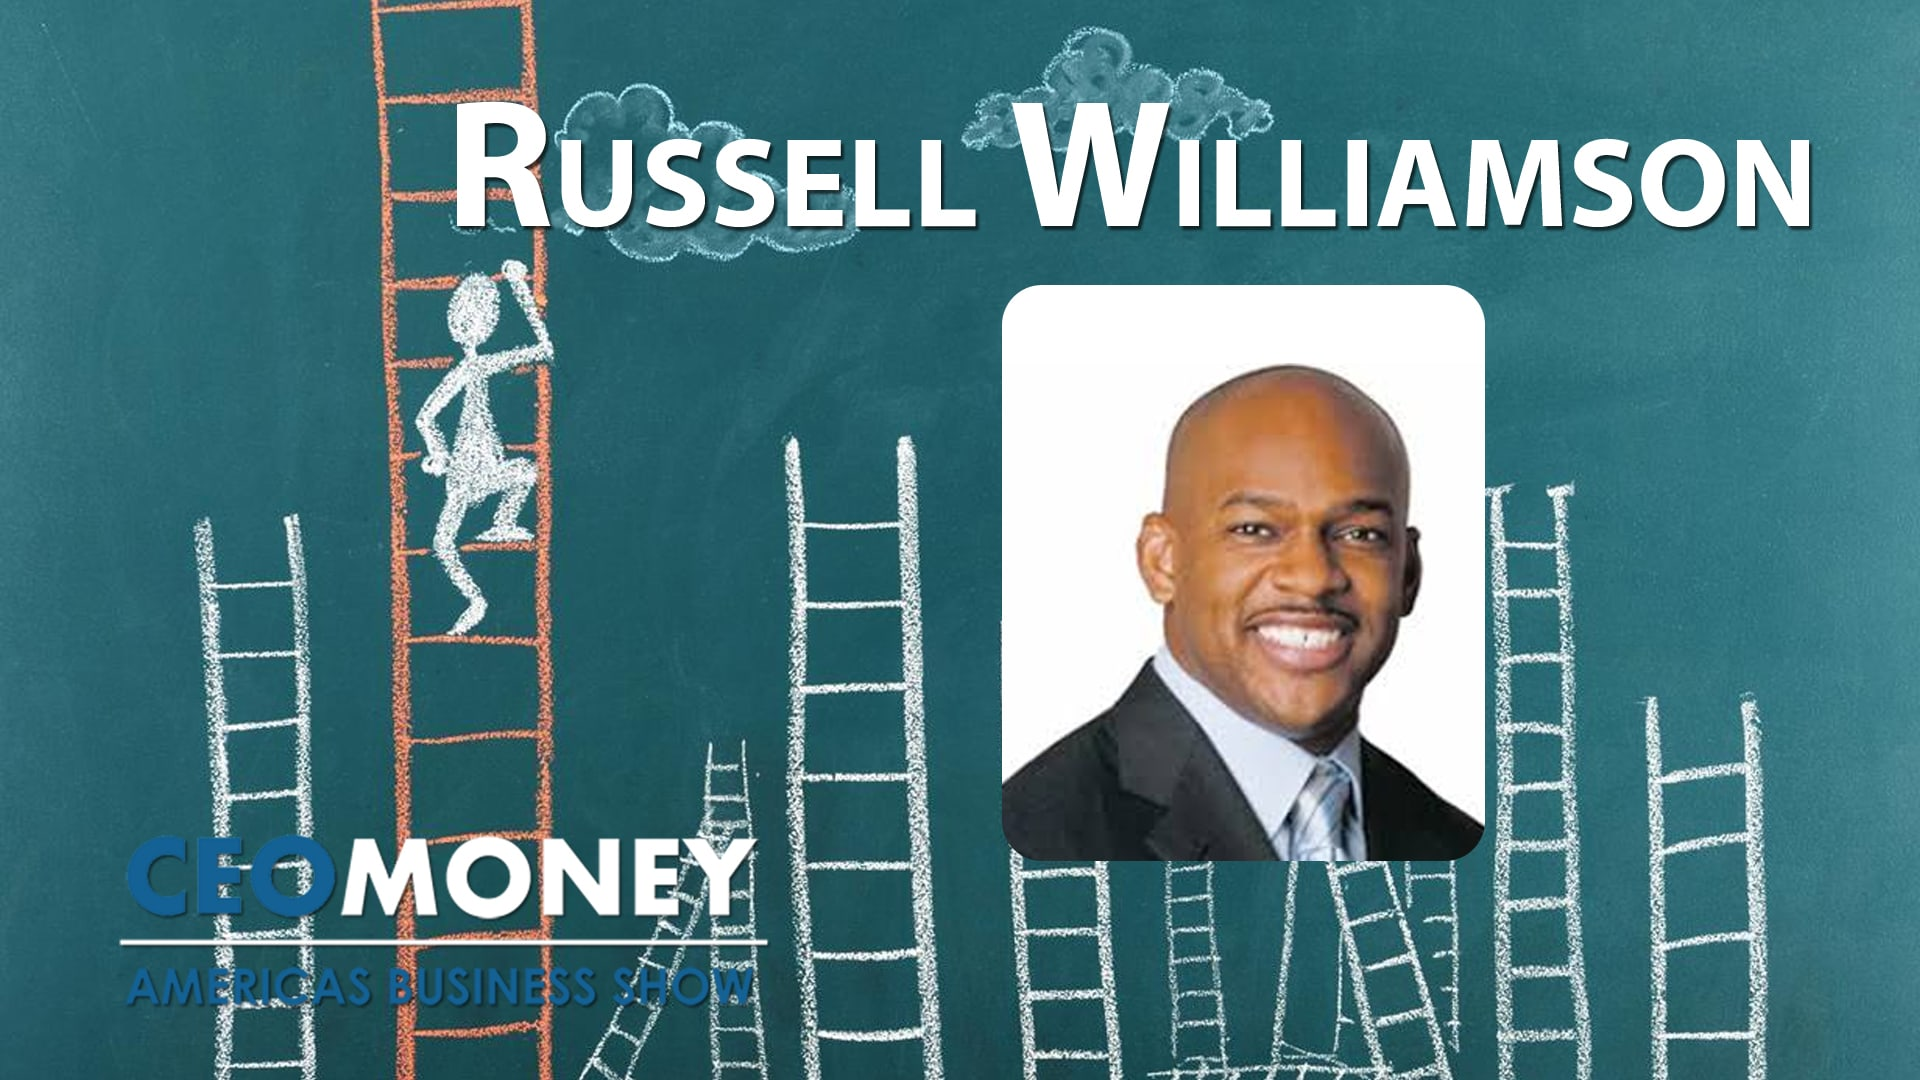 Russell Williamson tells his story of success through integrity, results, and excellence